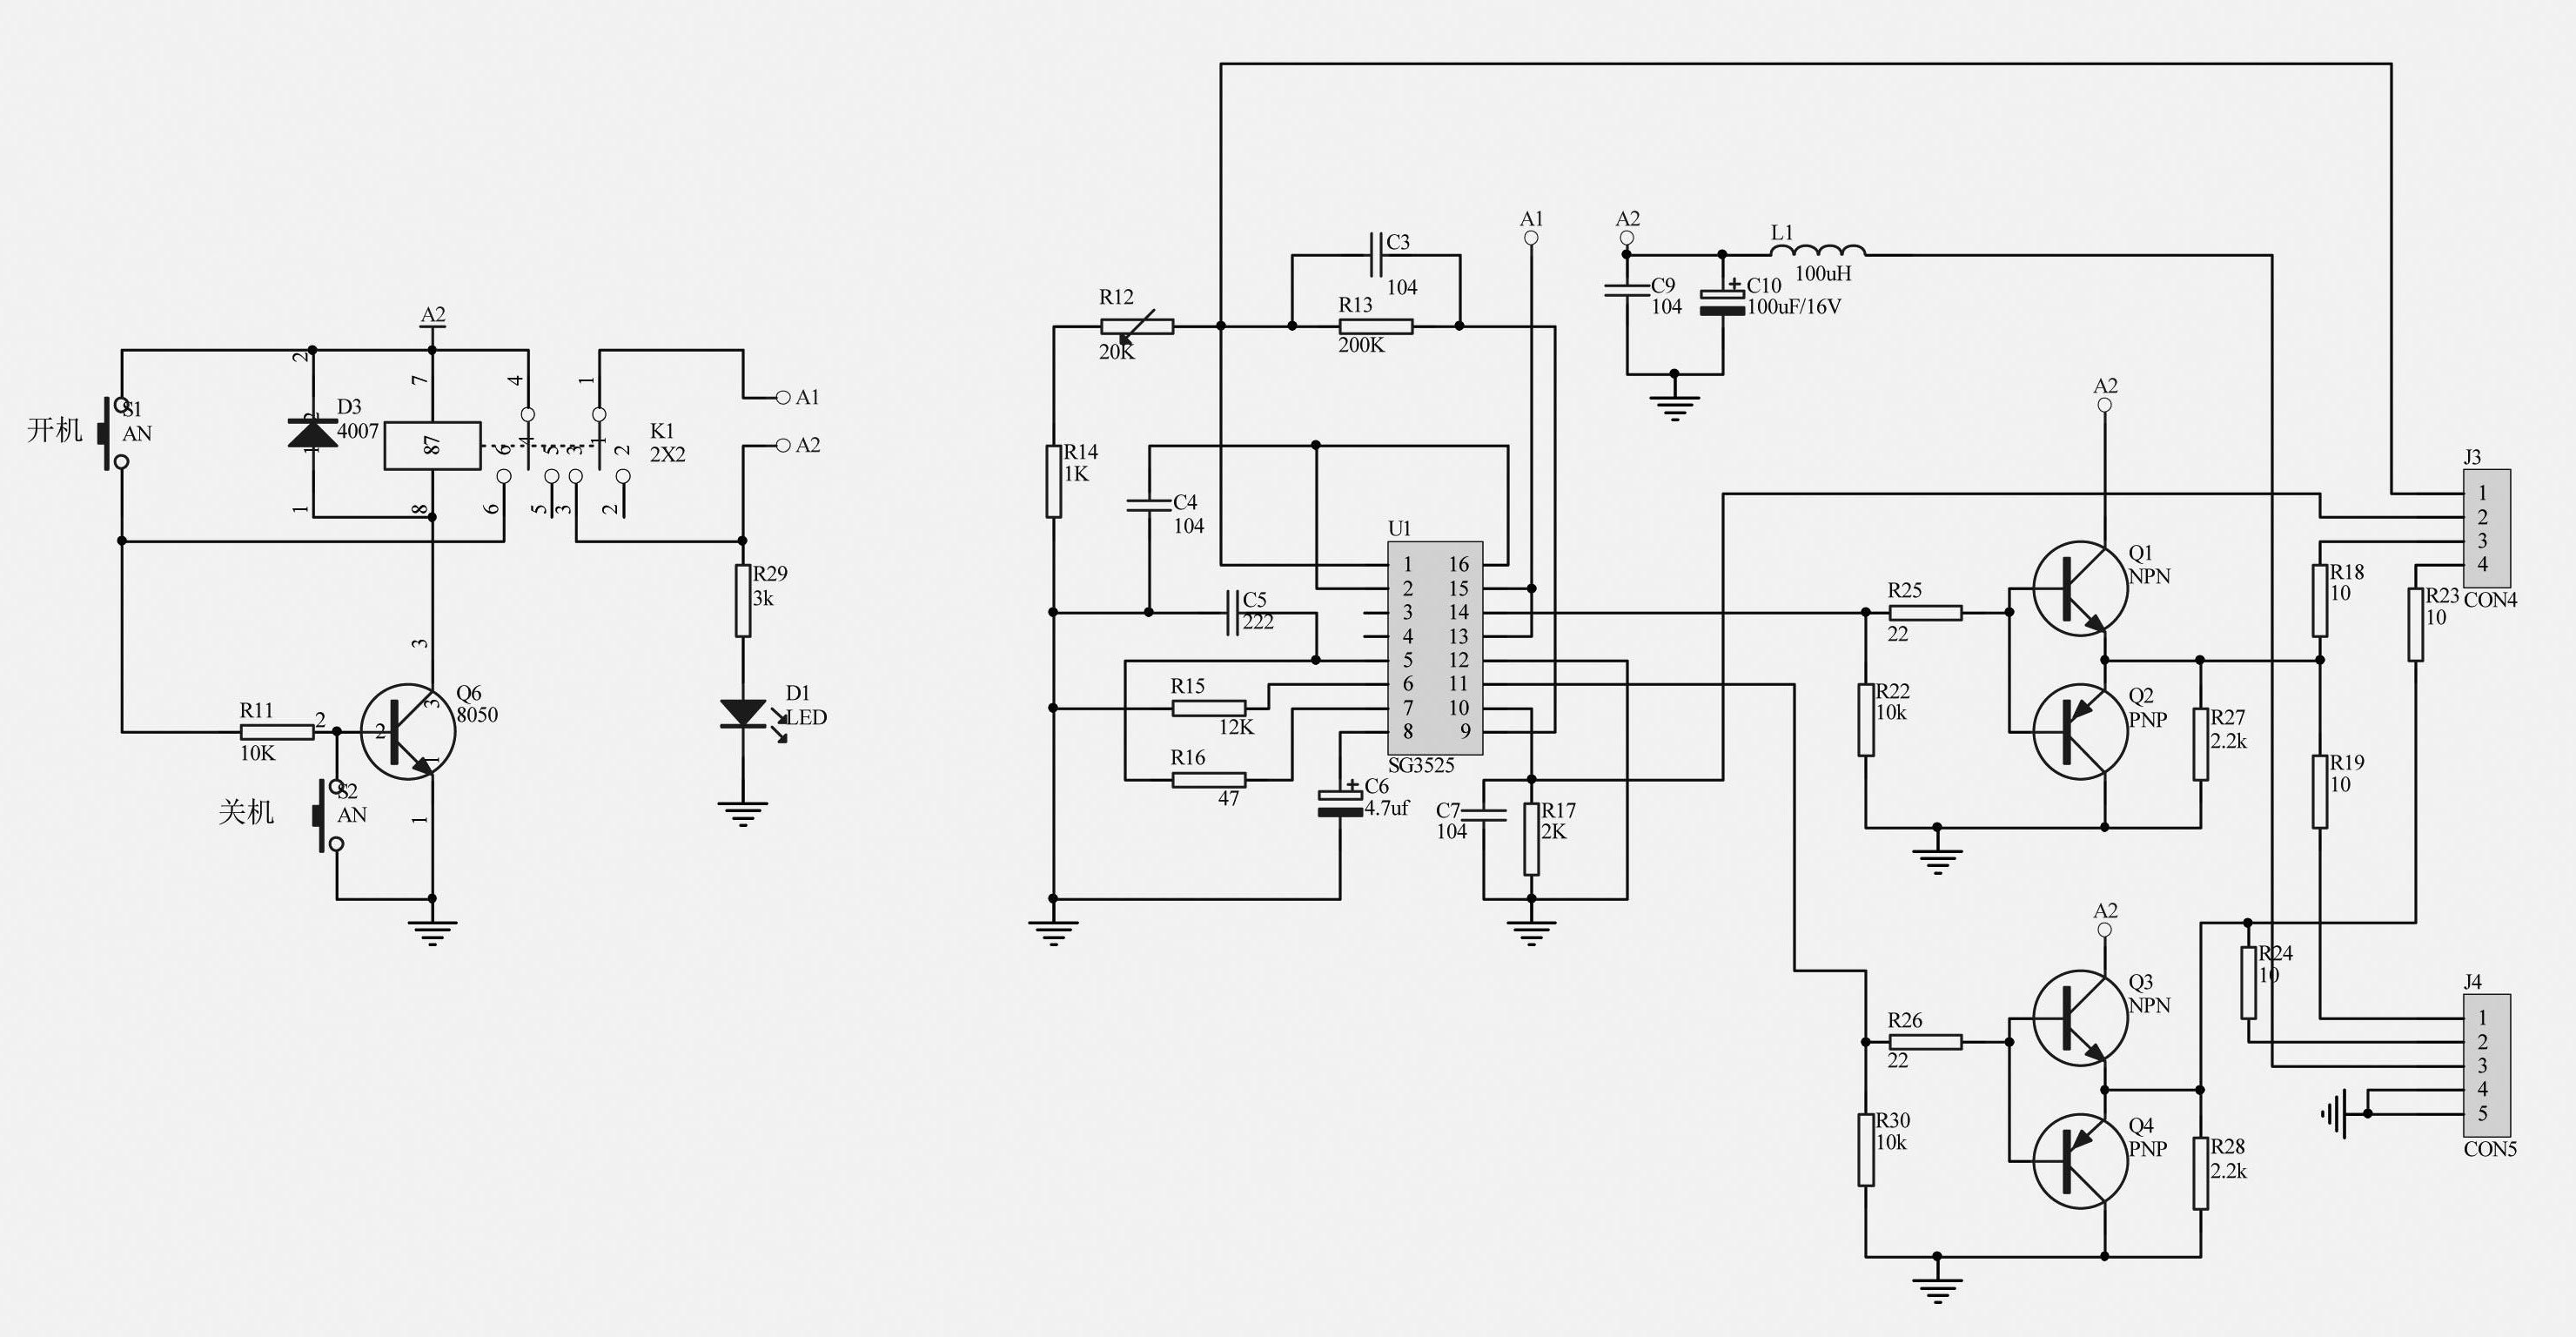 12 volt 1000 watt power inverter design process gohz com rh gohz com Basic Circuit Diagram Rectifier Circuit Diagram